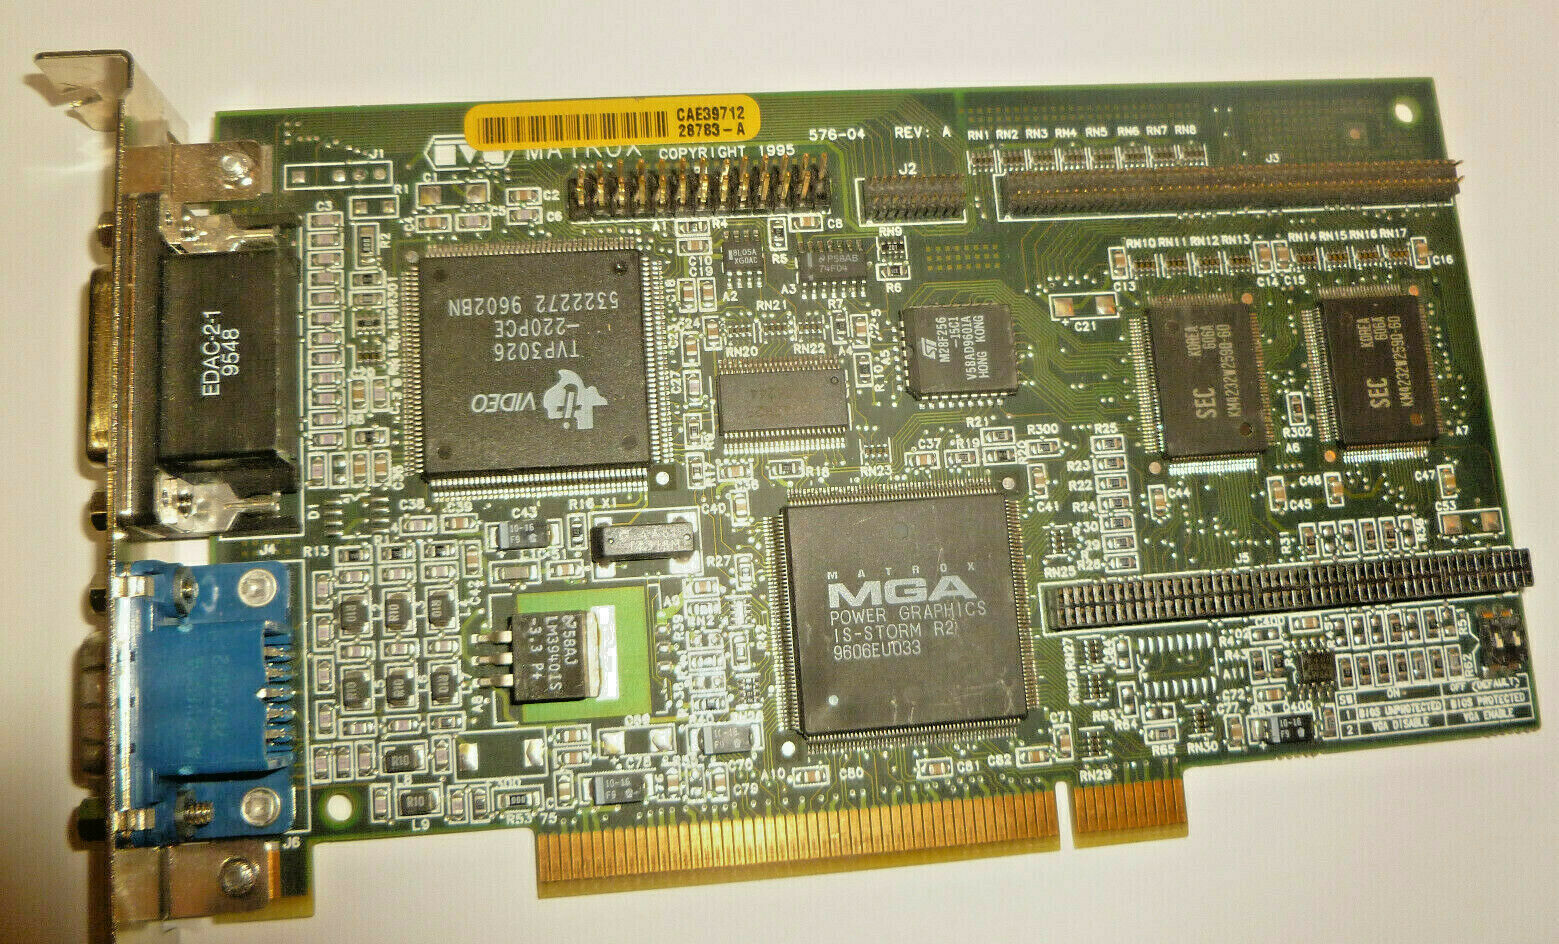 MATROX 576-04 REV A 2MB PCI GRAPHICS CARD w/VGA and Game Port outputs TESTED